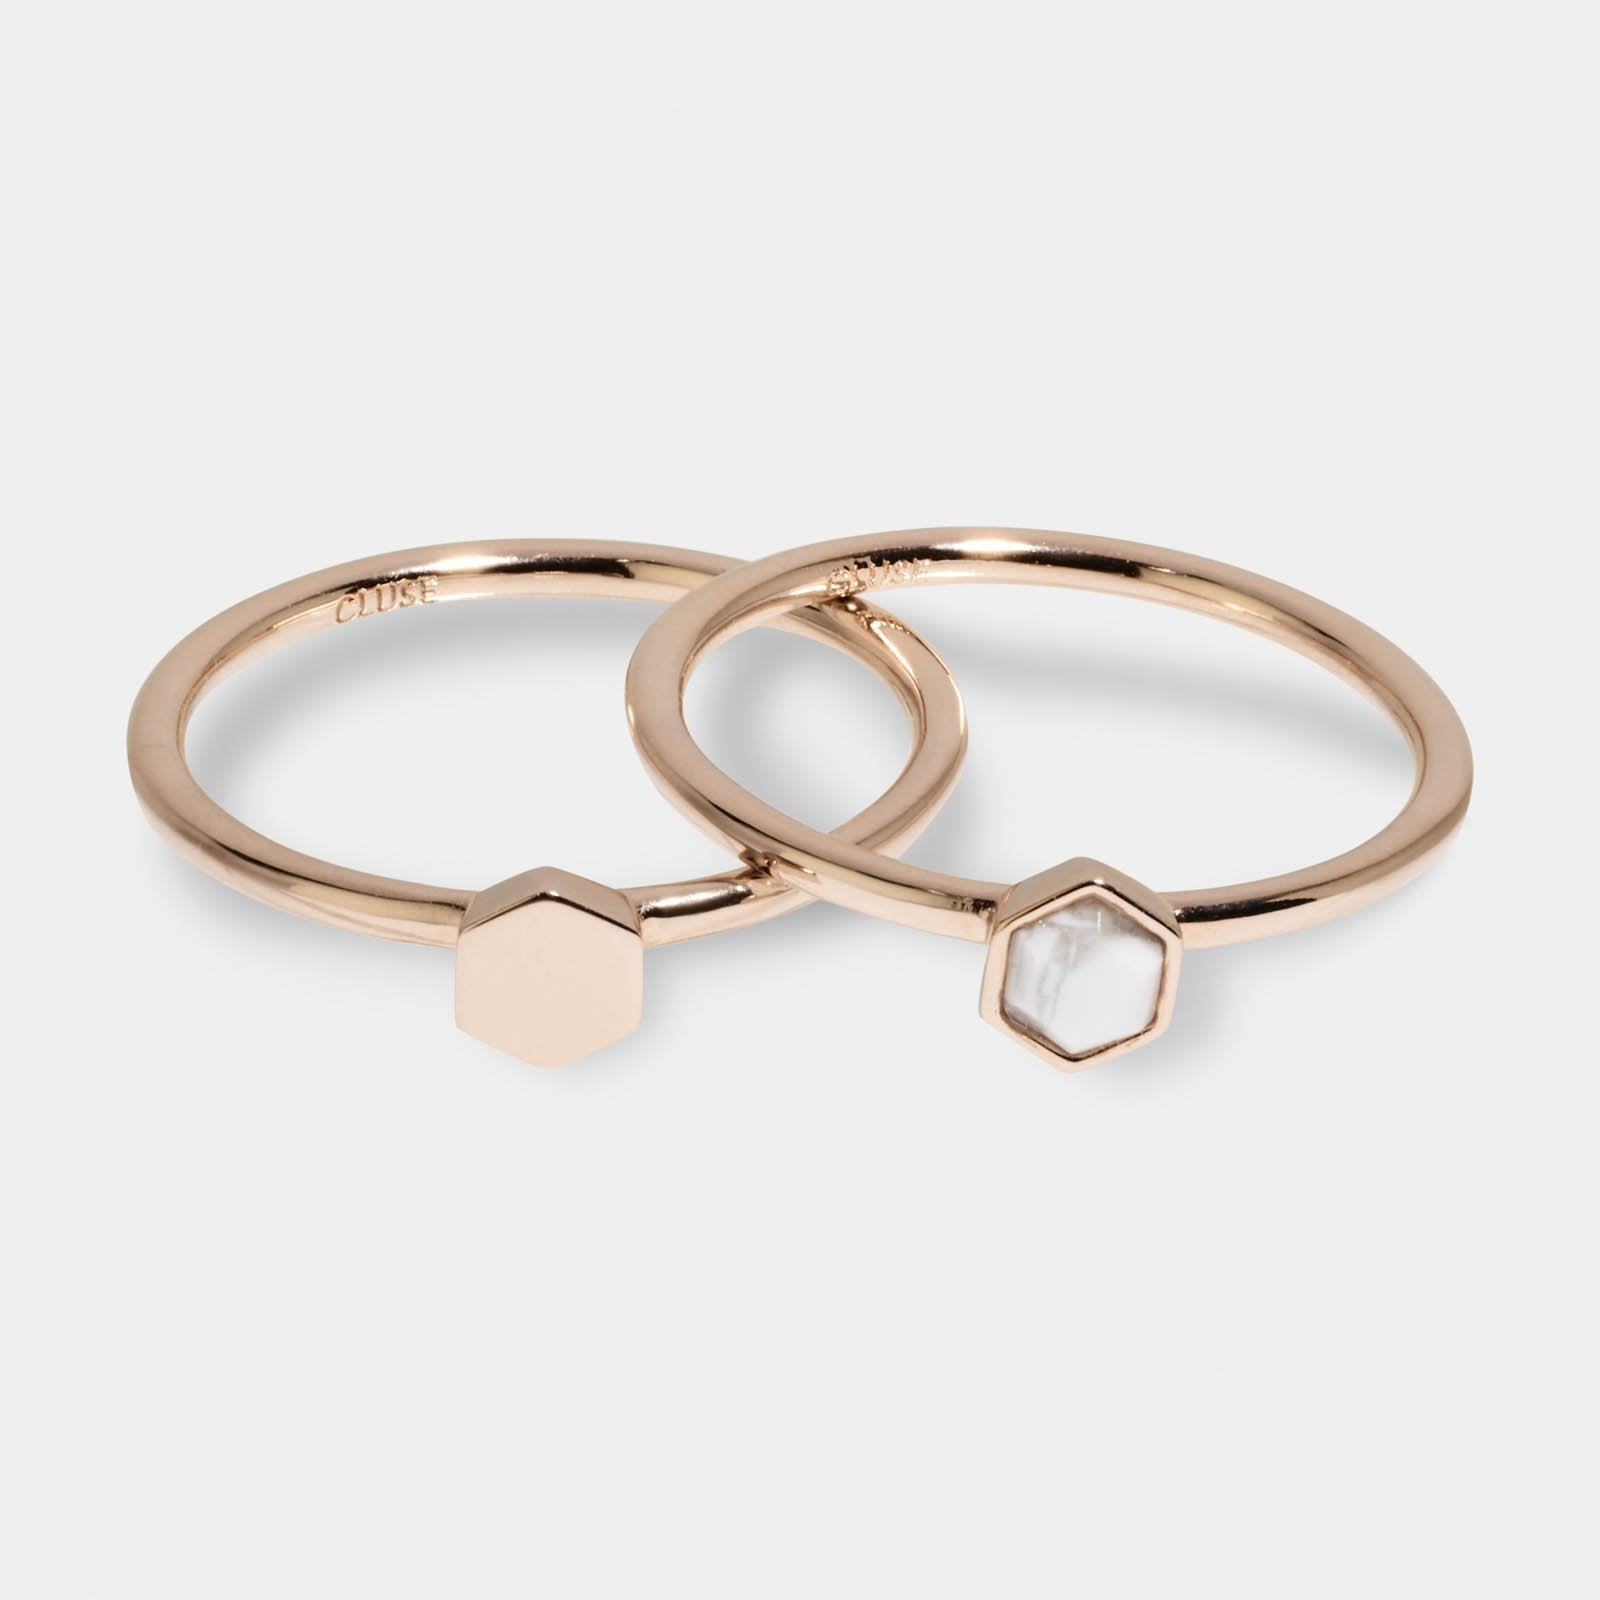 CLUSE Idylle Rose Gold Solid And Marble Hexagon Ring Set CLJ40001-52 - Set de anillos talla 52